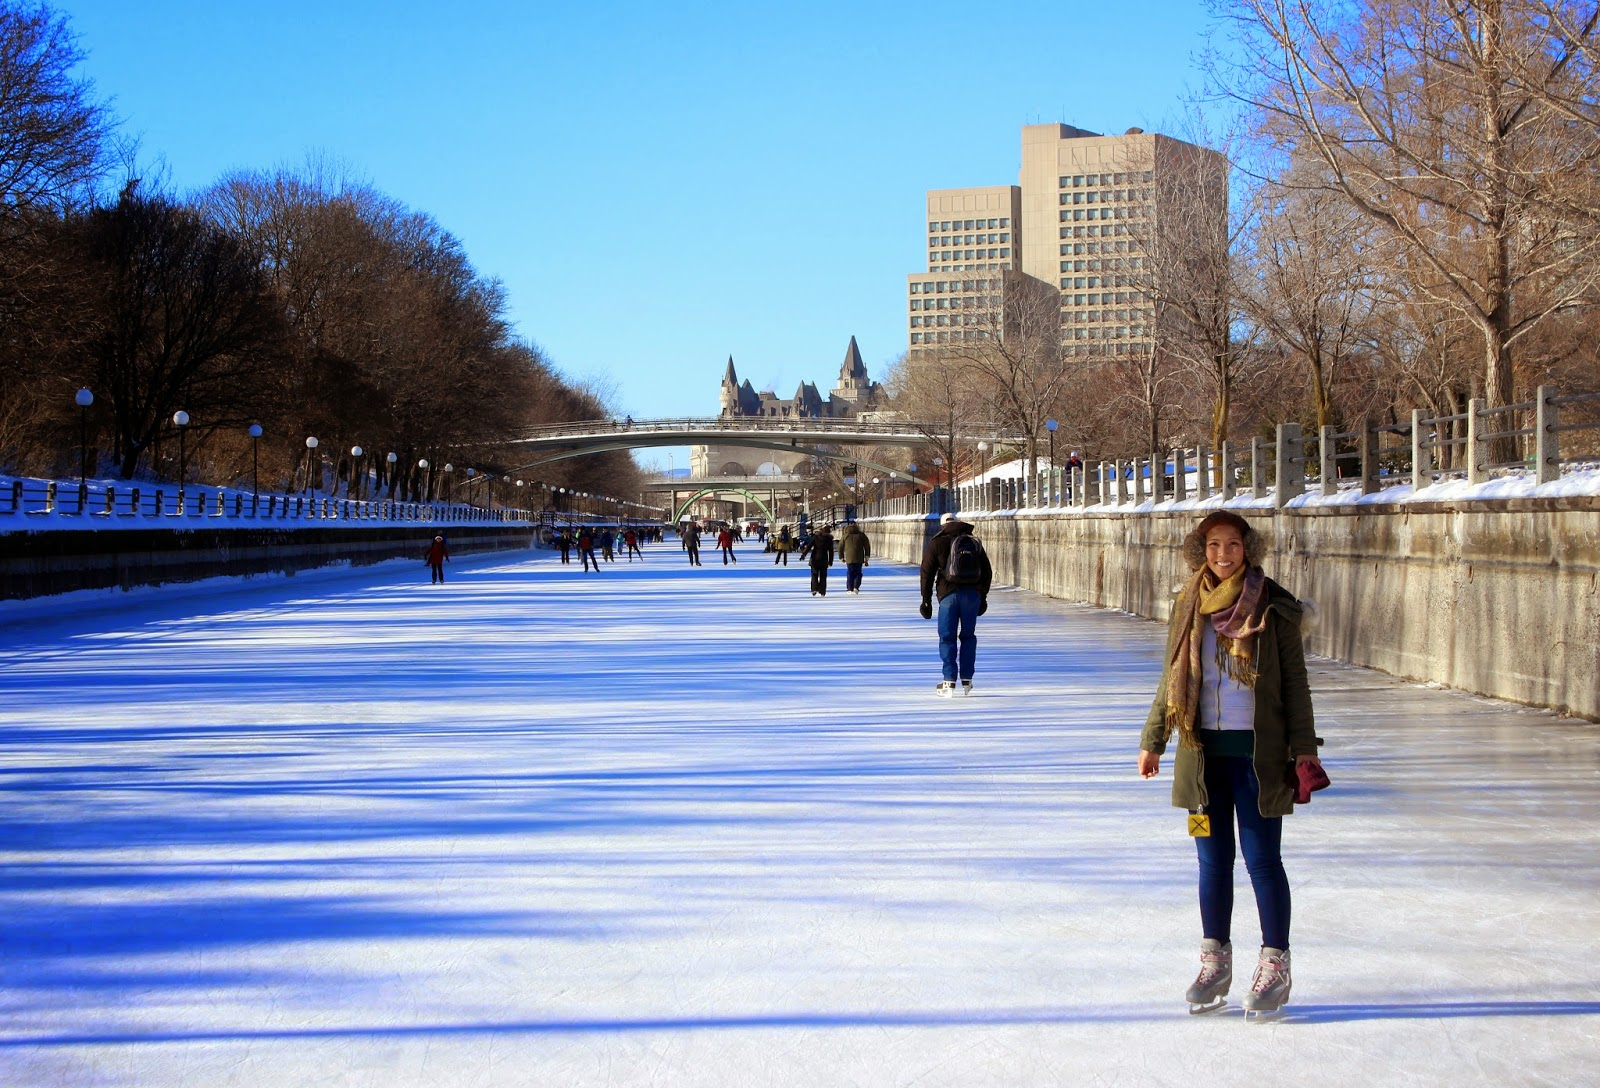 ice skating on the rideau canal and winterlude festivities